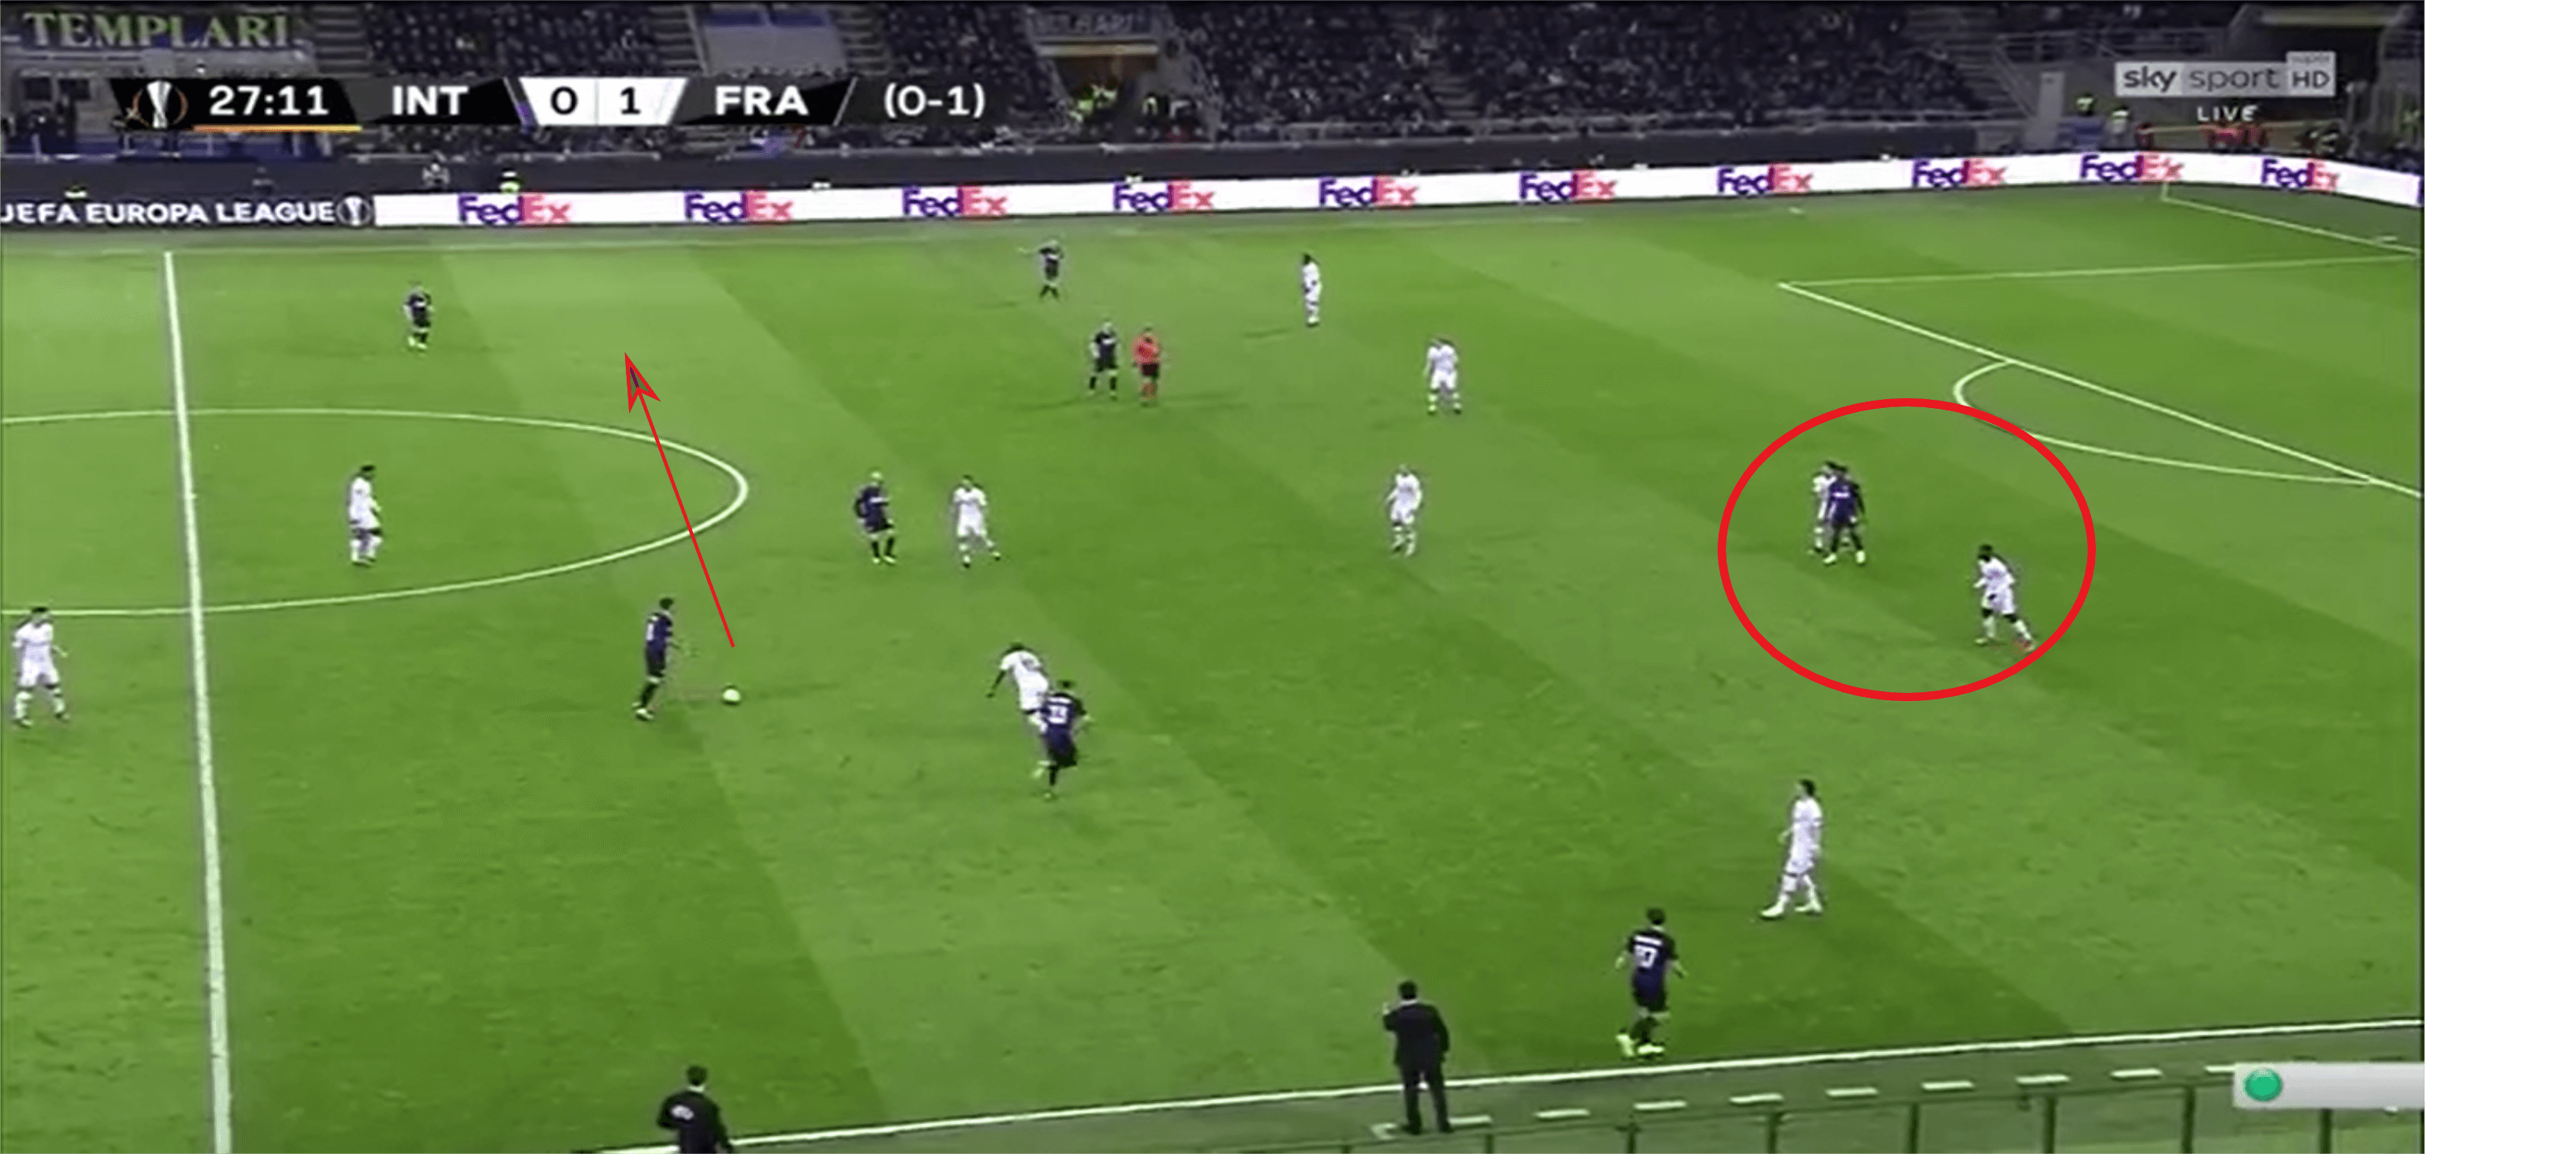 Frankfurt defence - Inter offensive approach